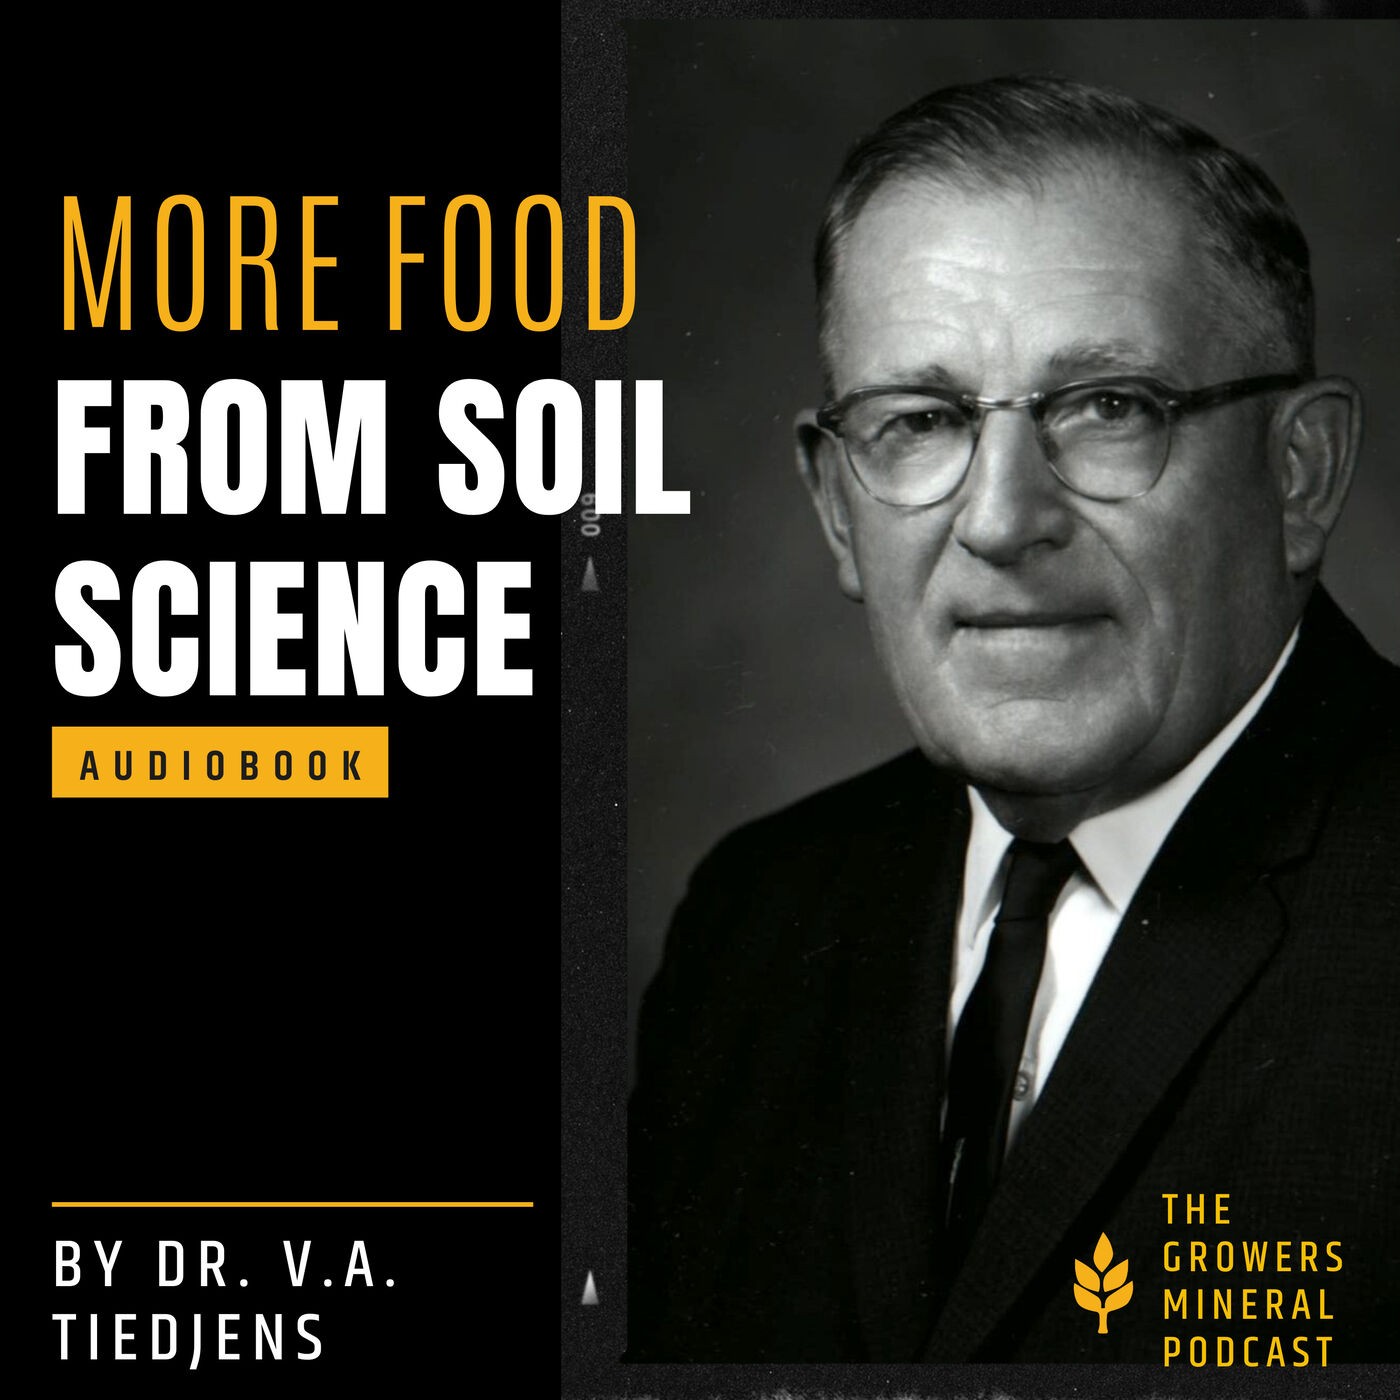 More Food from Soil Science Audiobook Ch. 8 - The Farmer is Still a Pioneer in His Profession